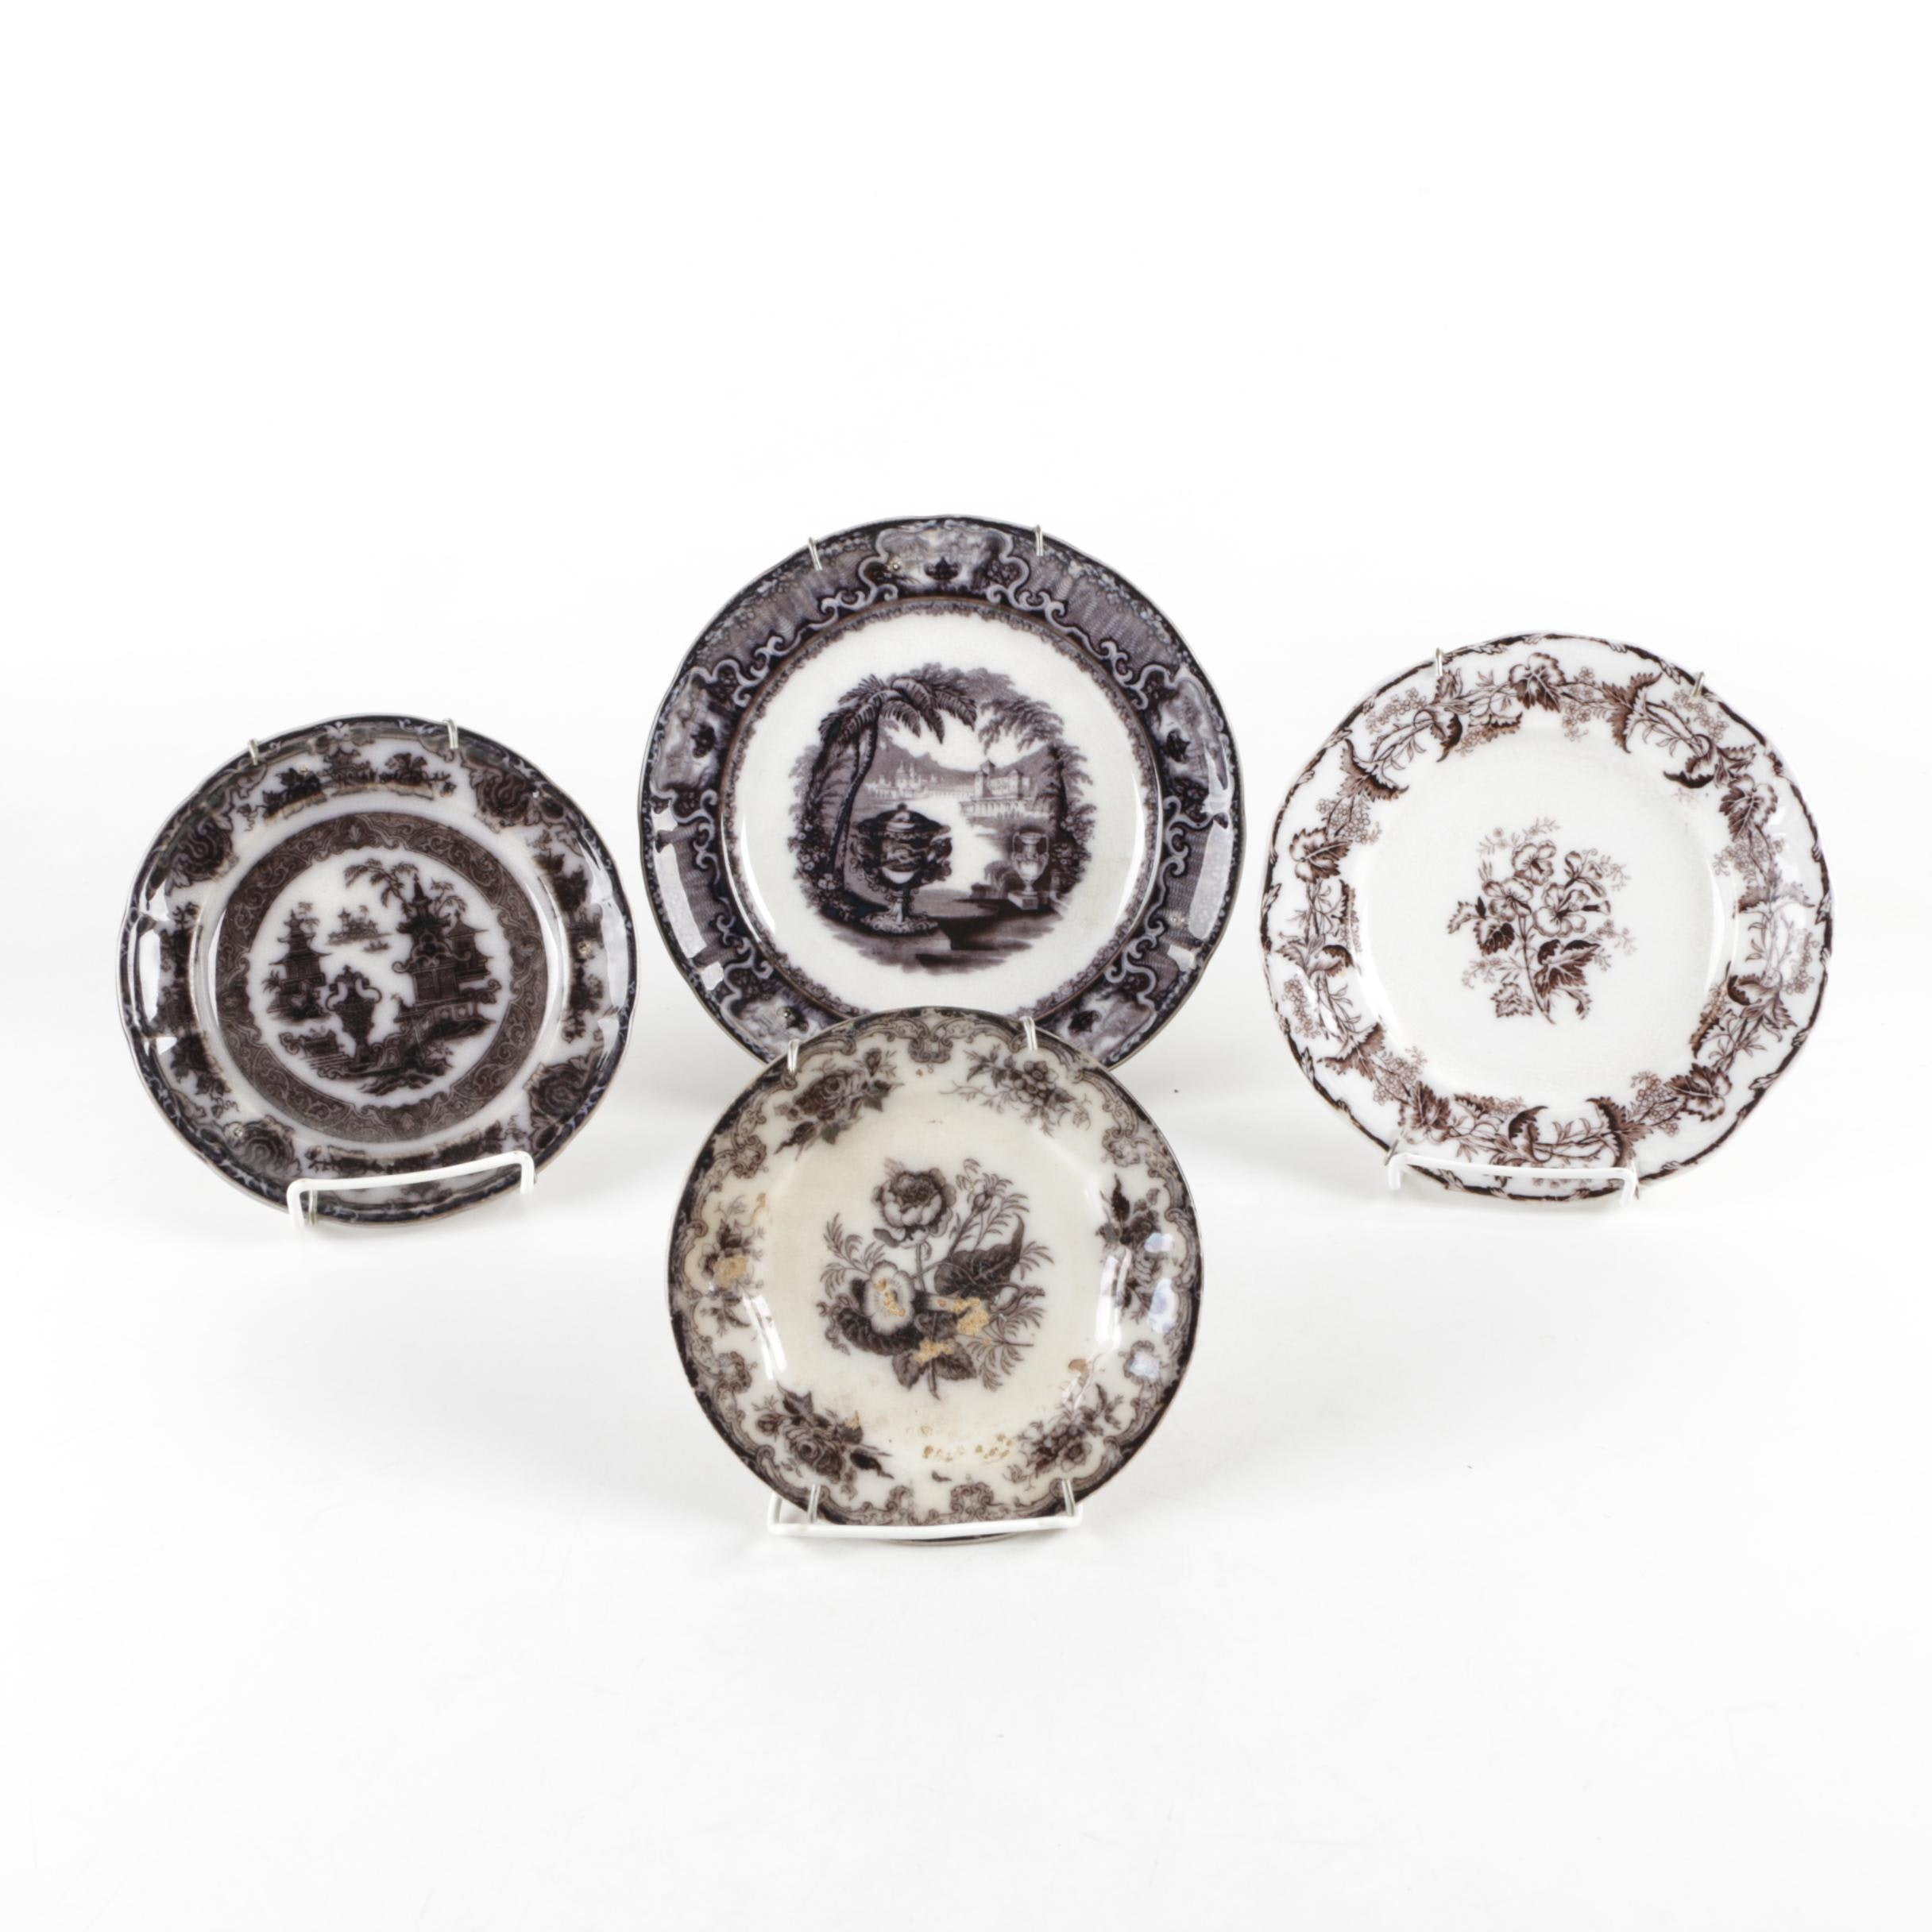 Antique and Vintage Black and White Plates